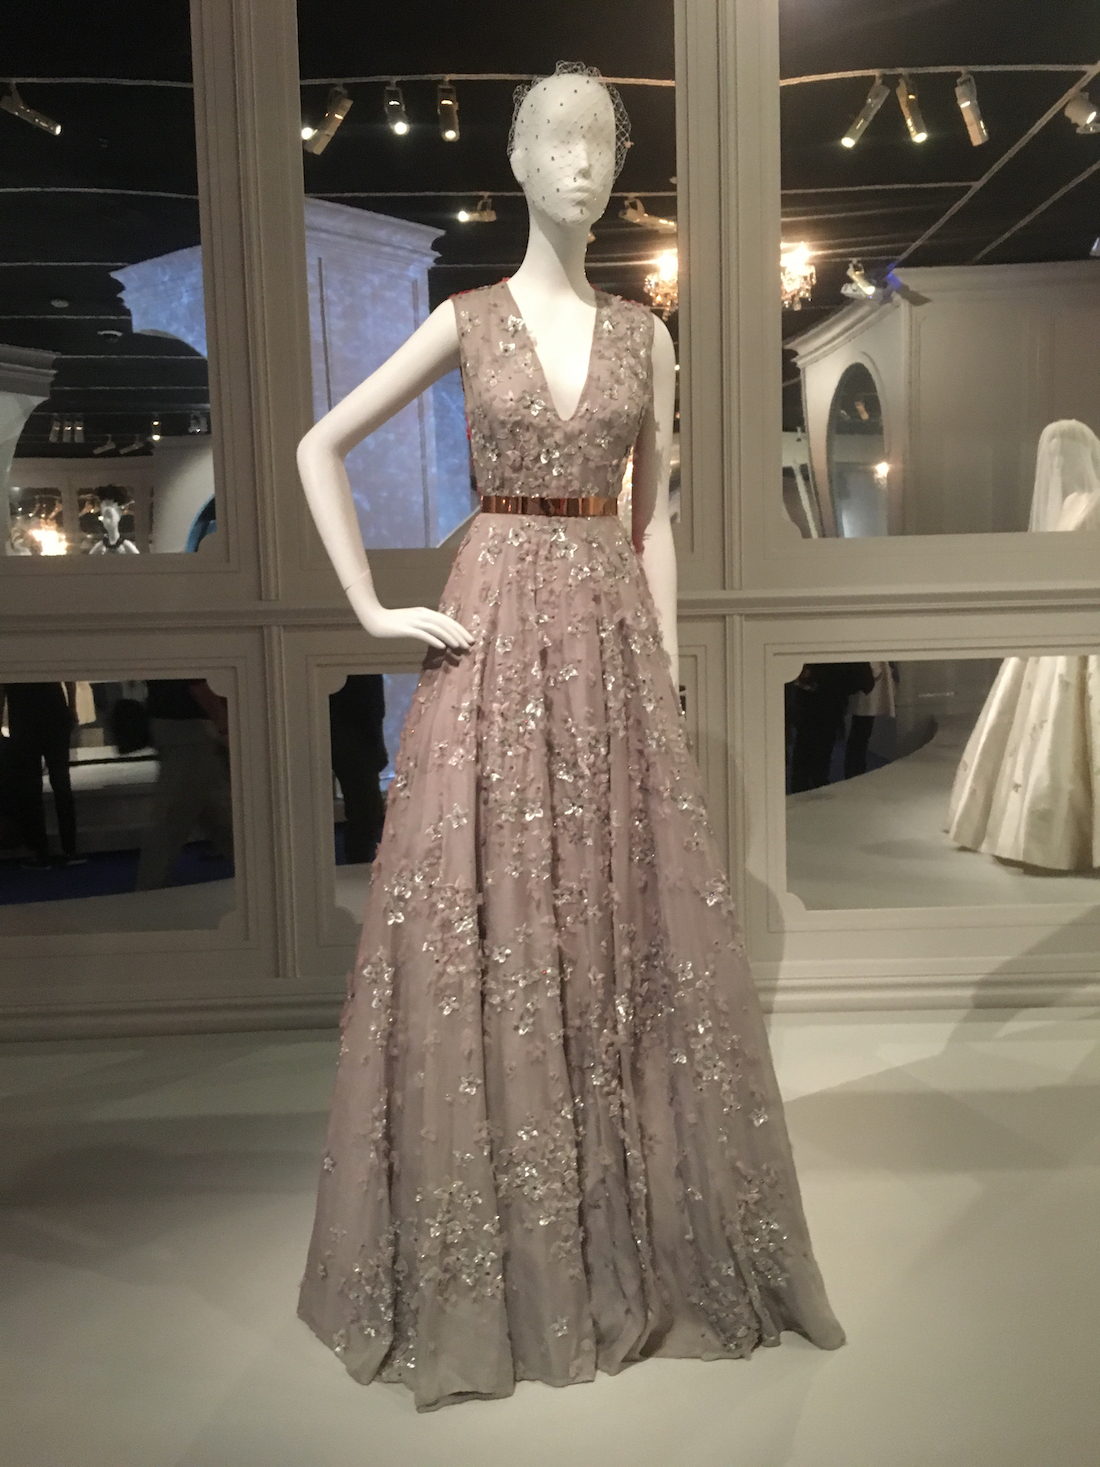 The House of Dior- Seventy Years of Haute Couture. Photo credit: Eco Warrior Princess